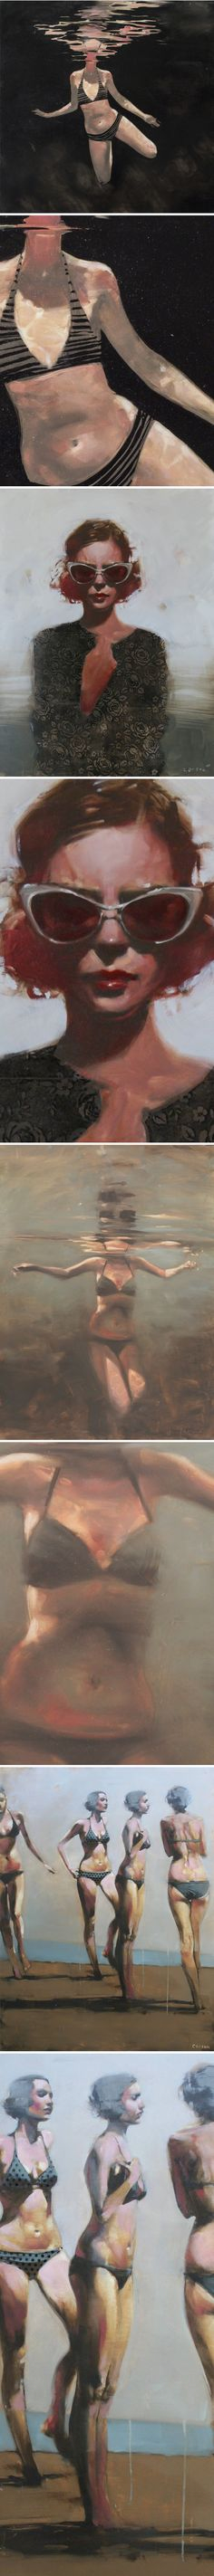 The Jealous Curator /// curated contemporary art /// michael carson